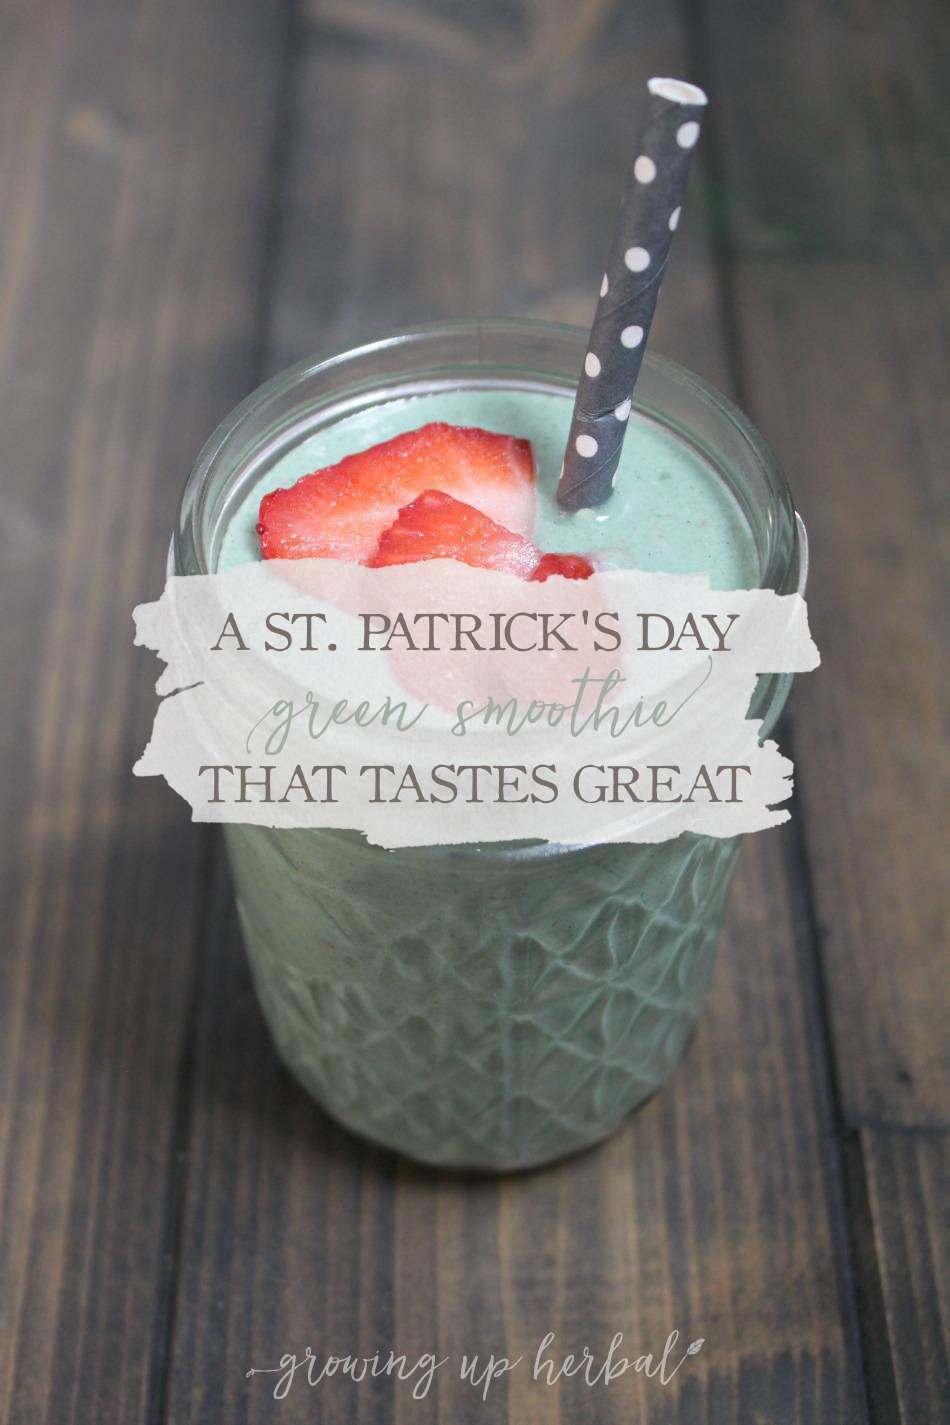 A St. Patrick's Day Green Smoothie That Tastes Great!